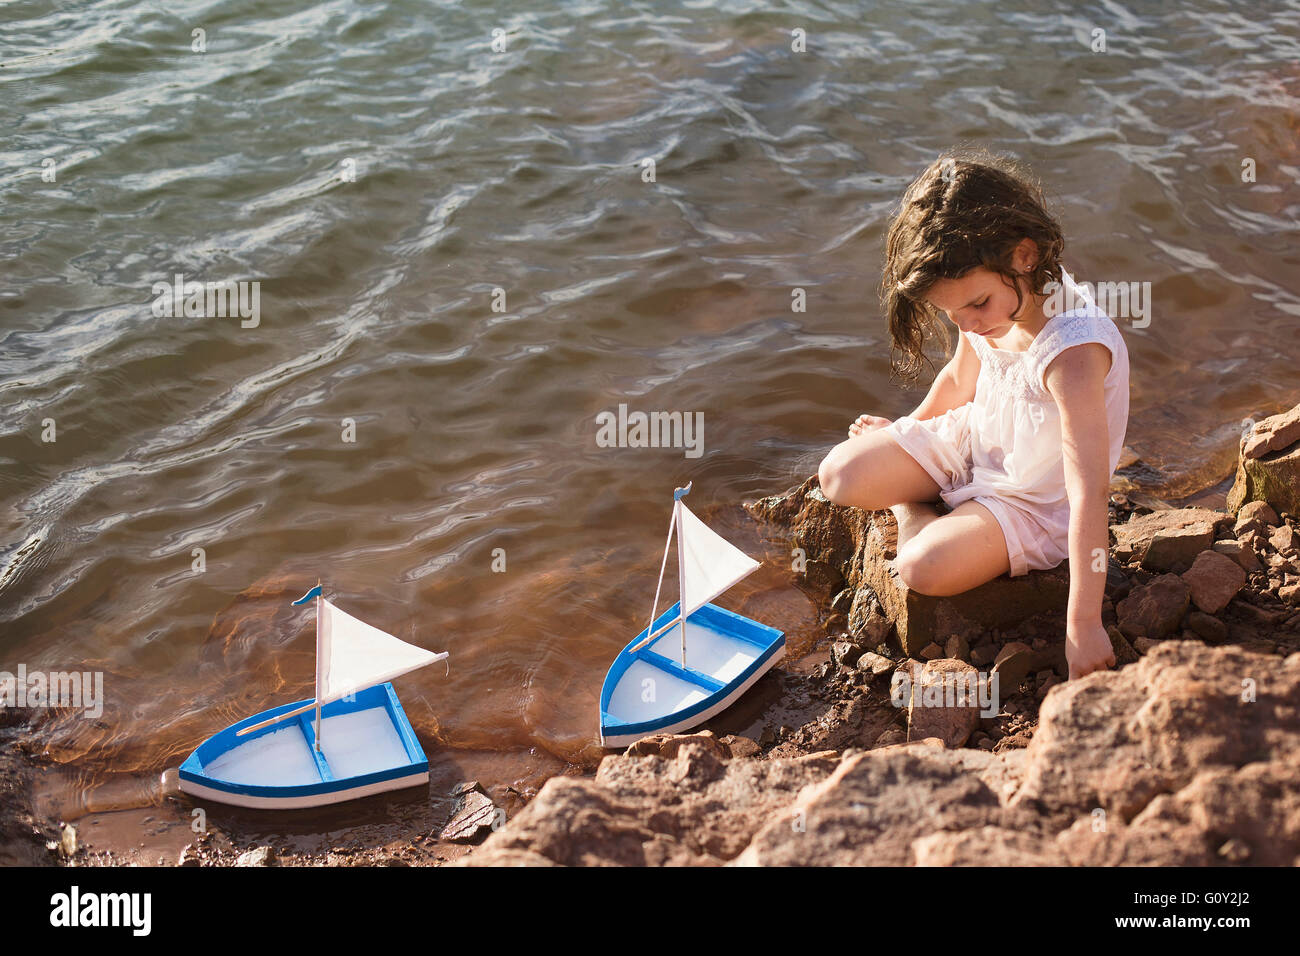 Boats Toy Stock Photos & Boats Toy Stock Images - Alamy